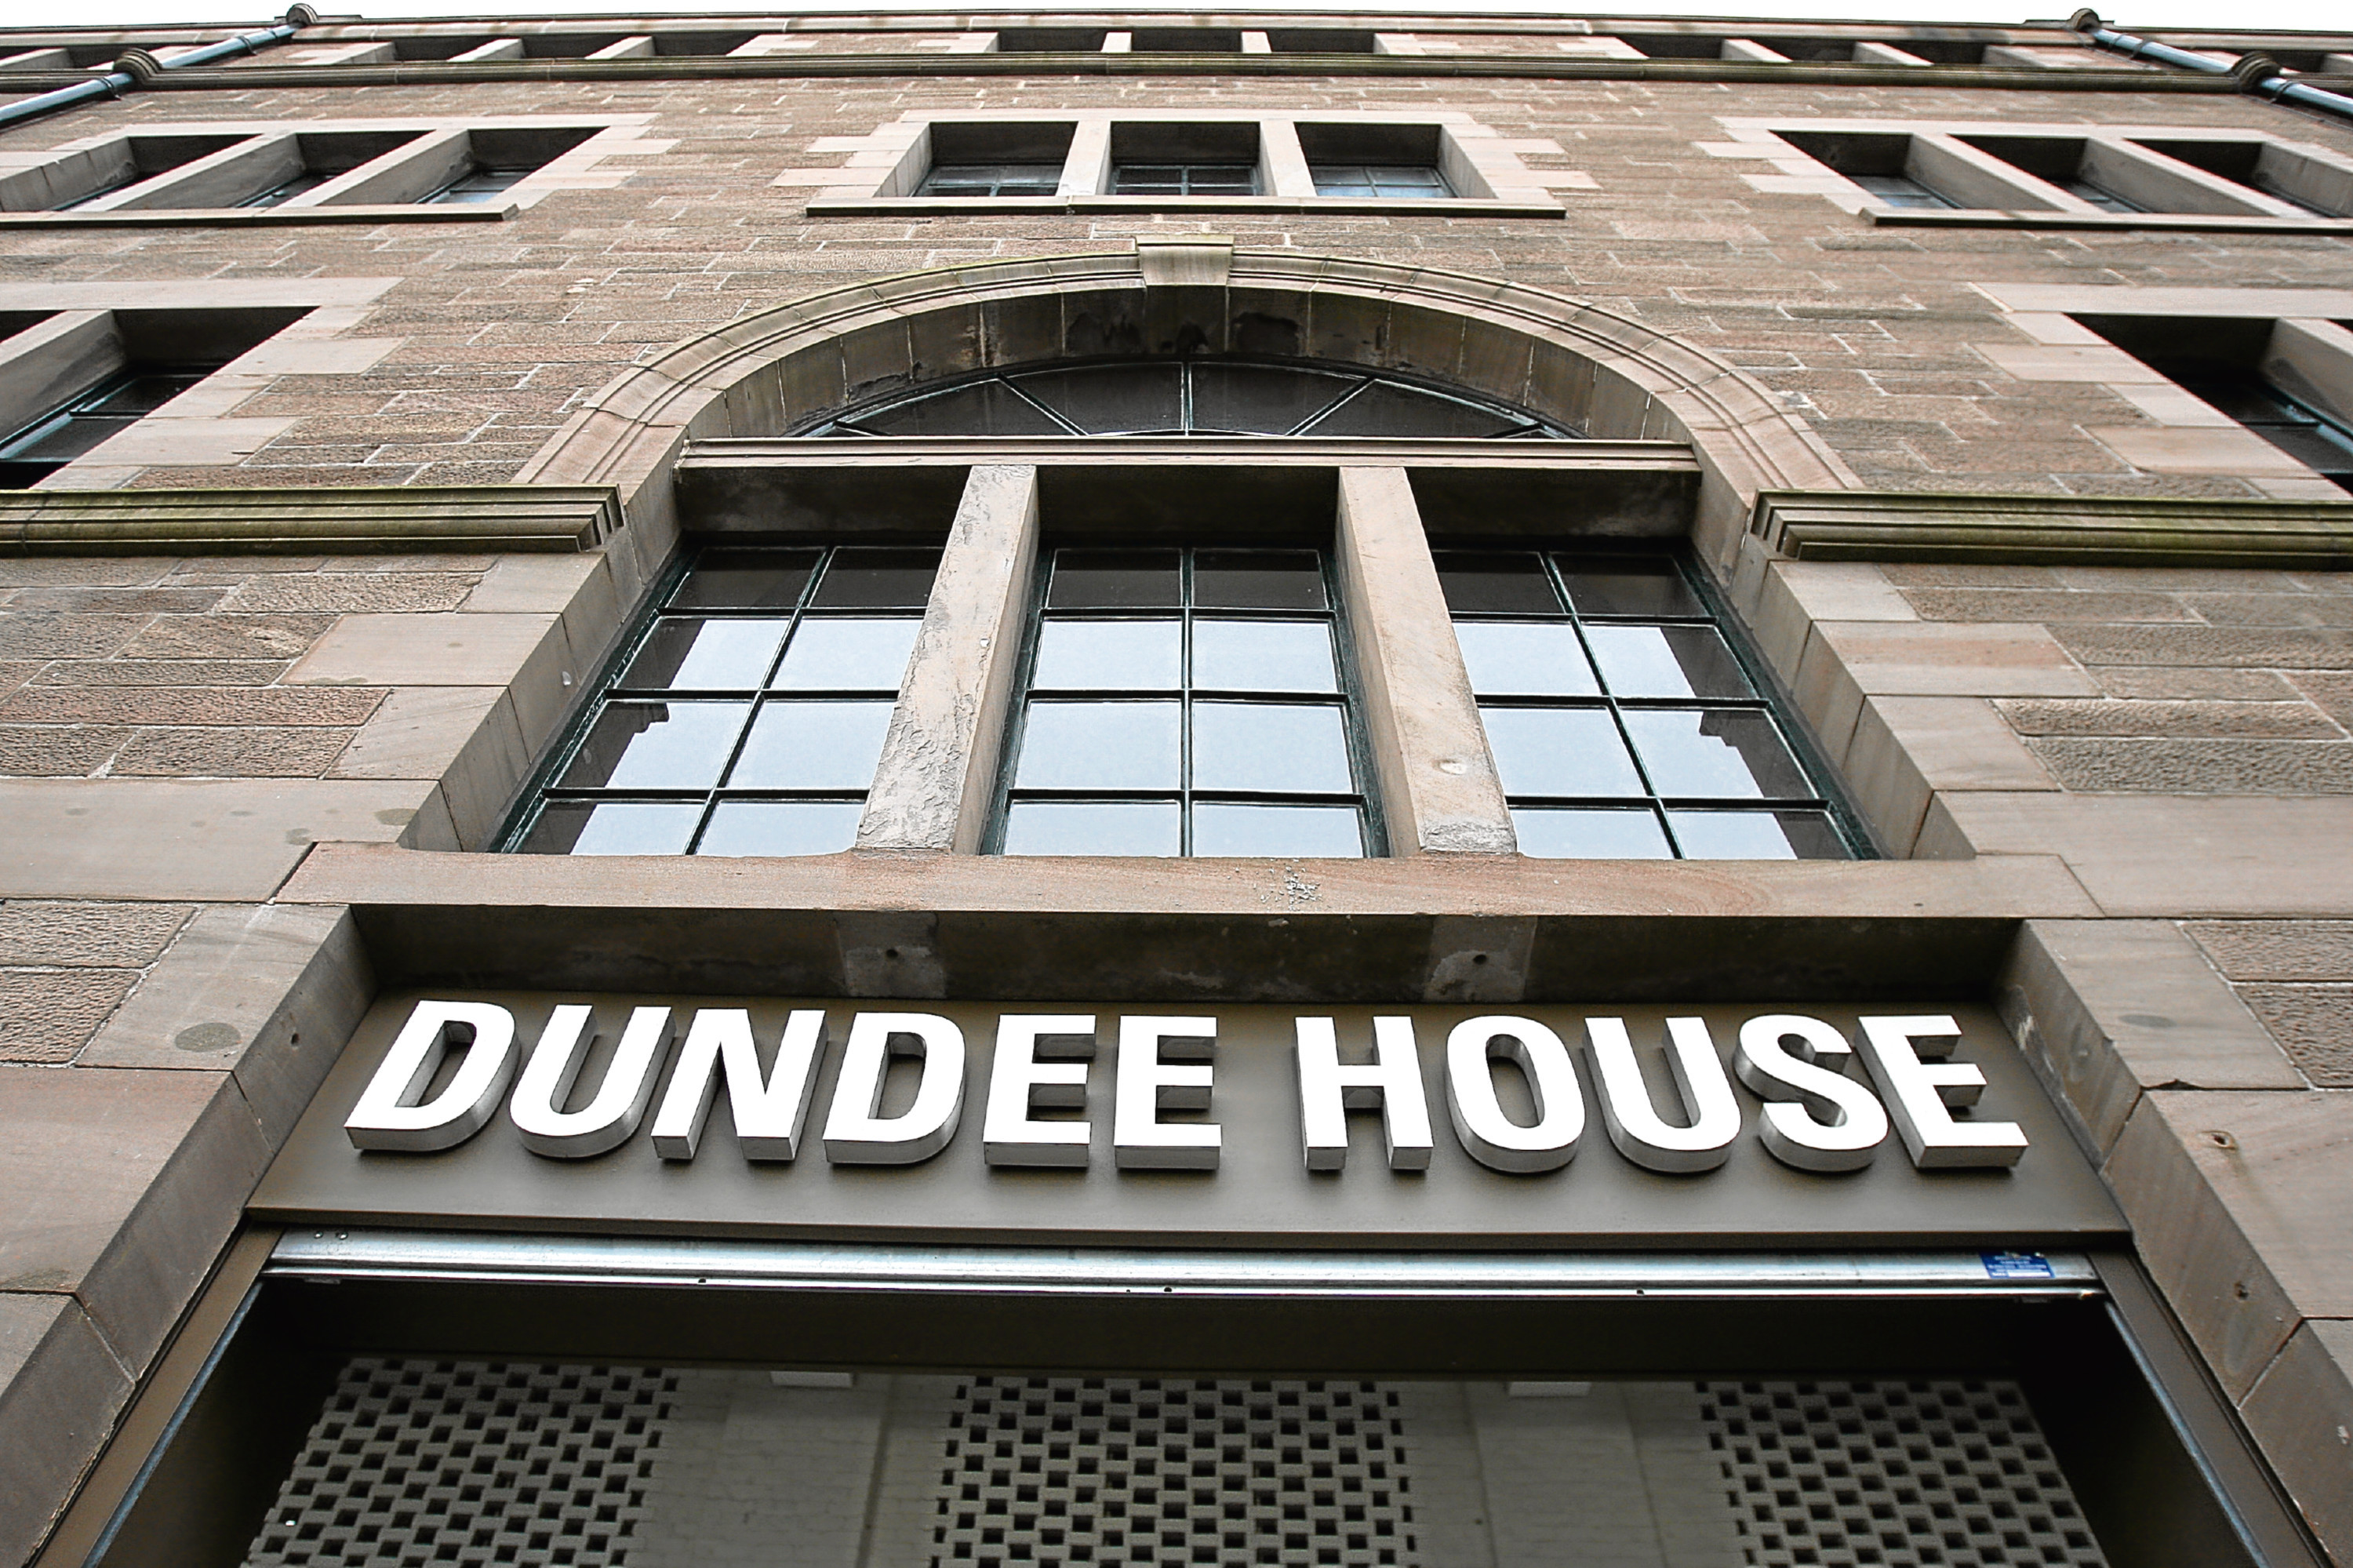 Dundee House, headquarters of Dundee City Council